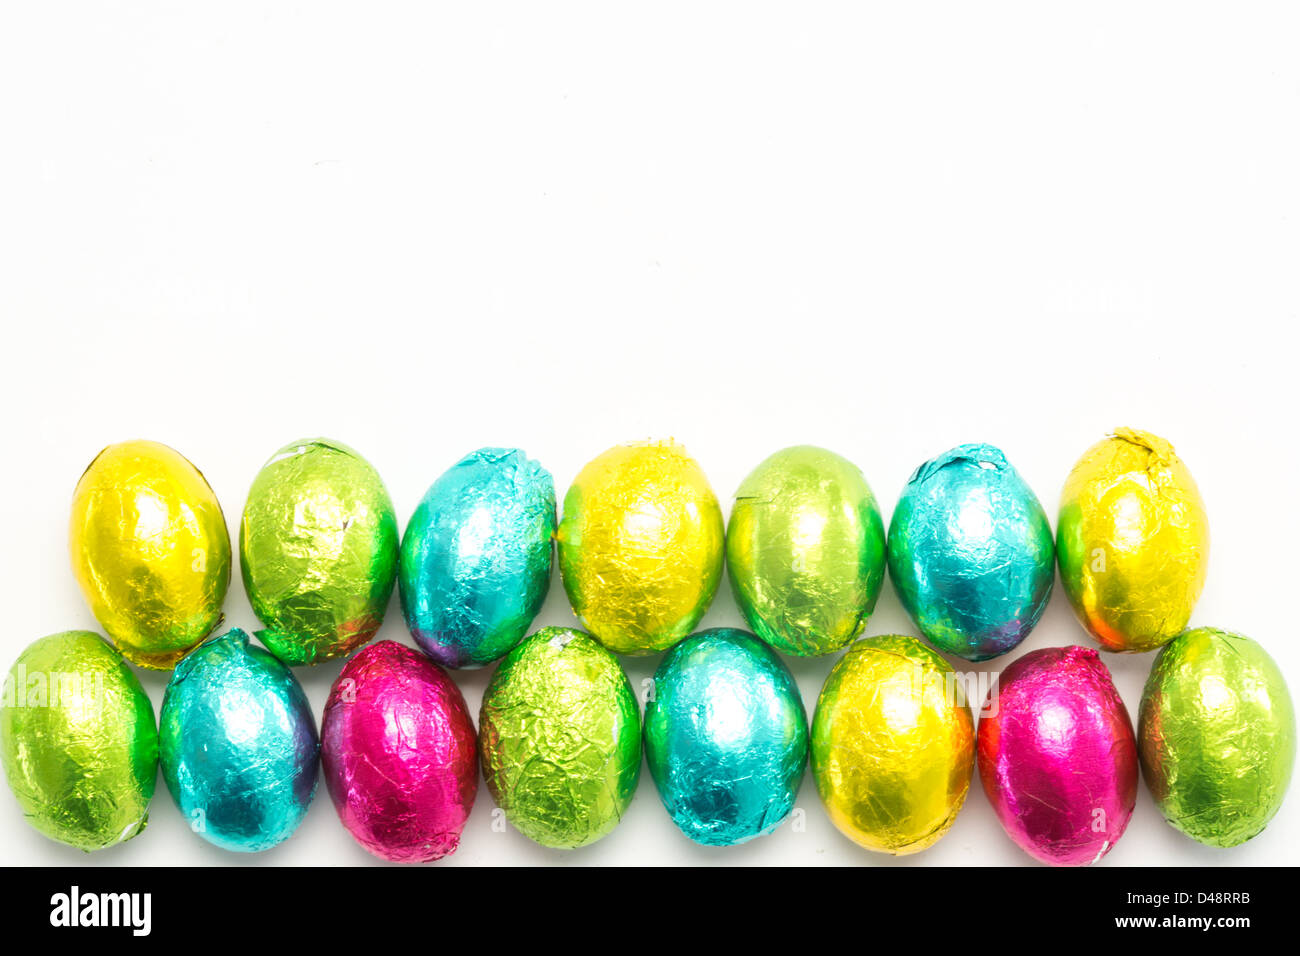 Colourful foil wrapped easter eggs - Stock Image